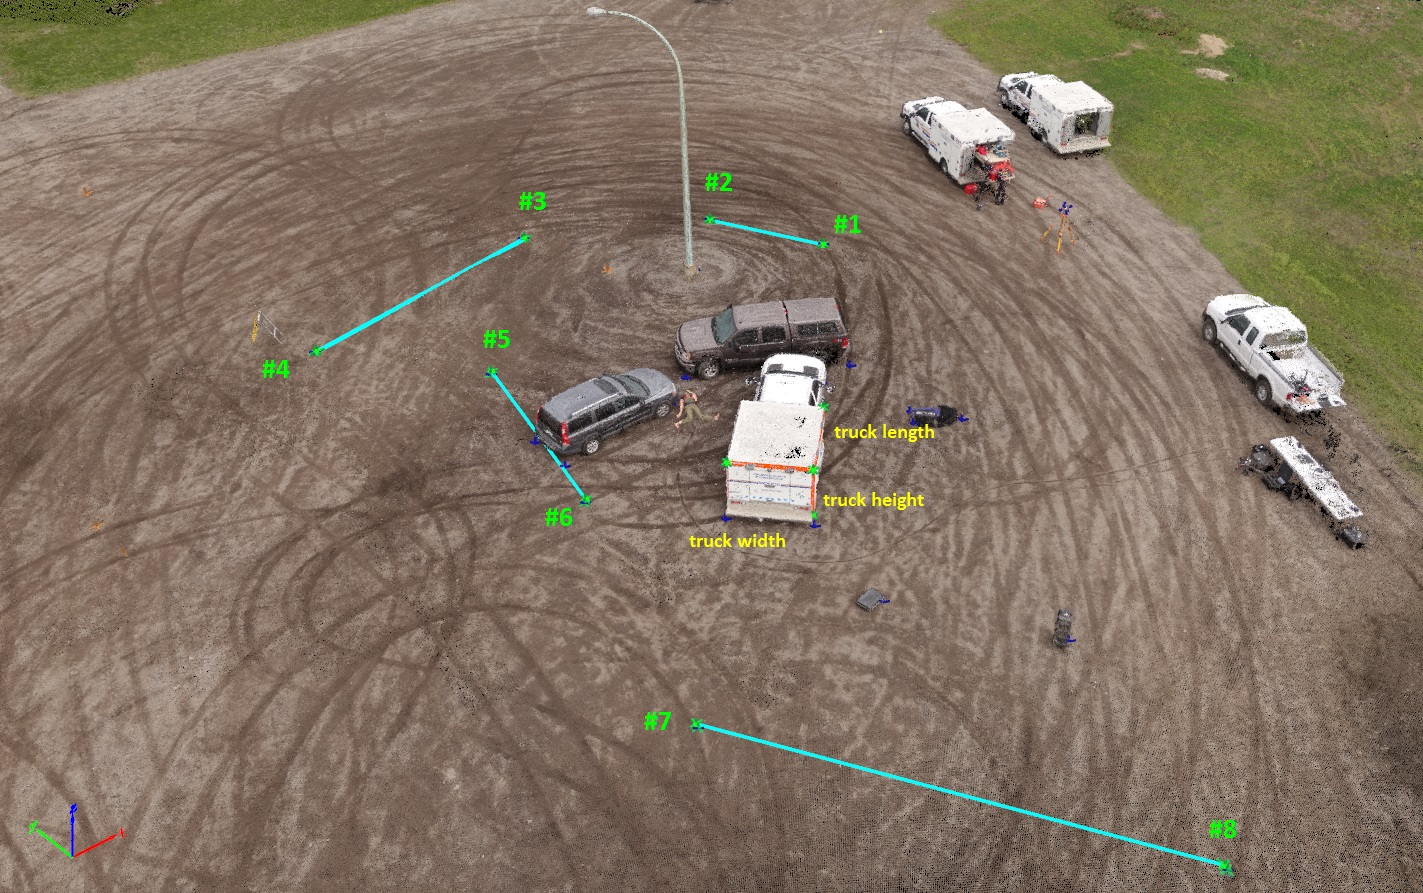 collision scene with measurements in Pix4Dmapper